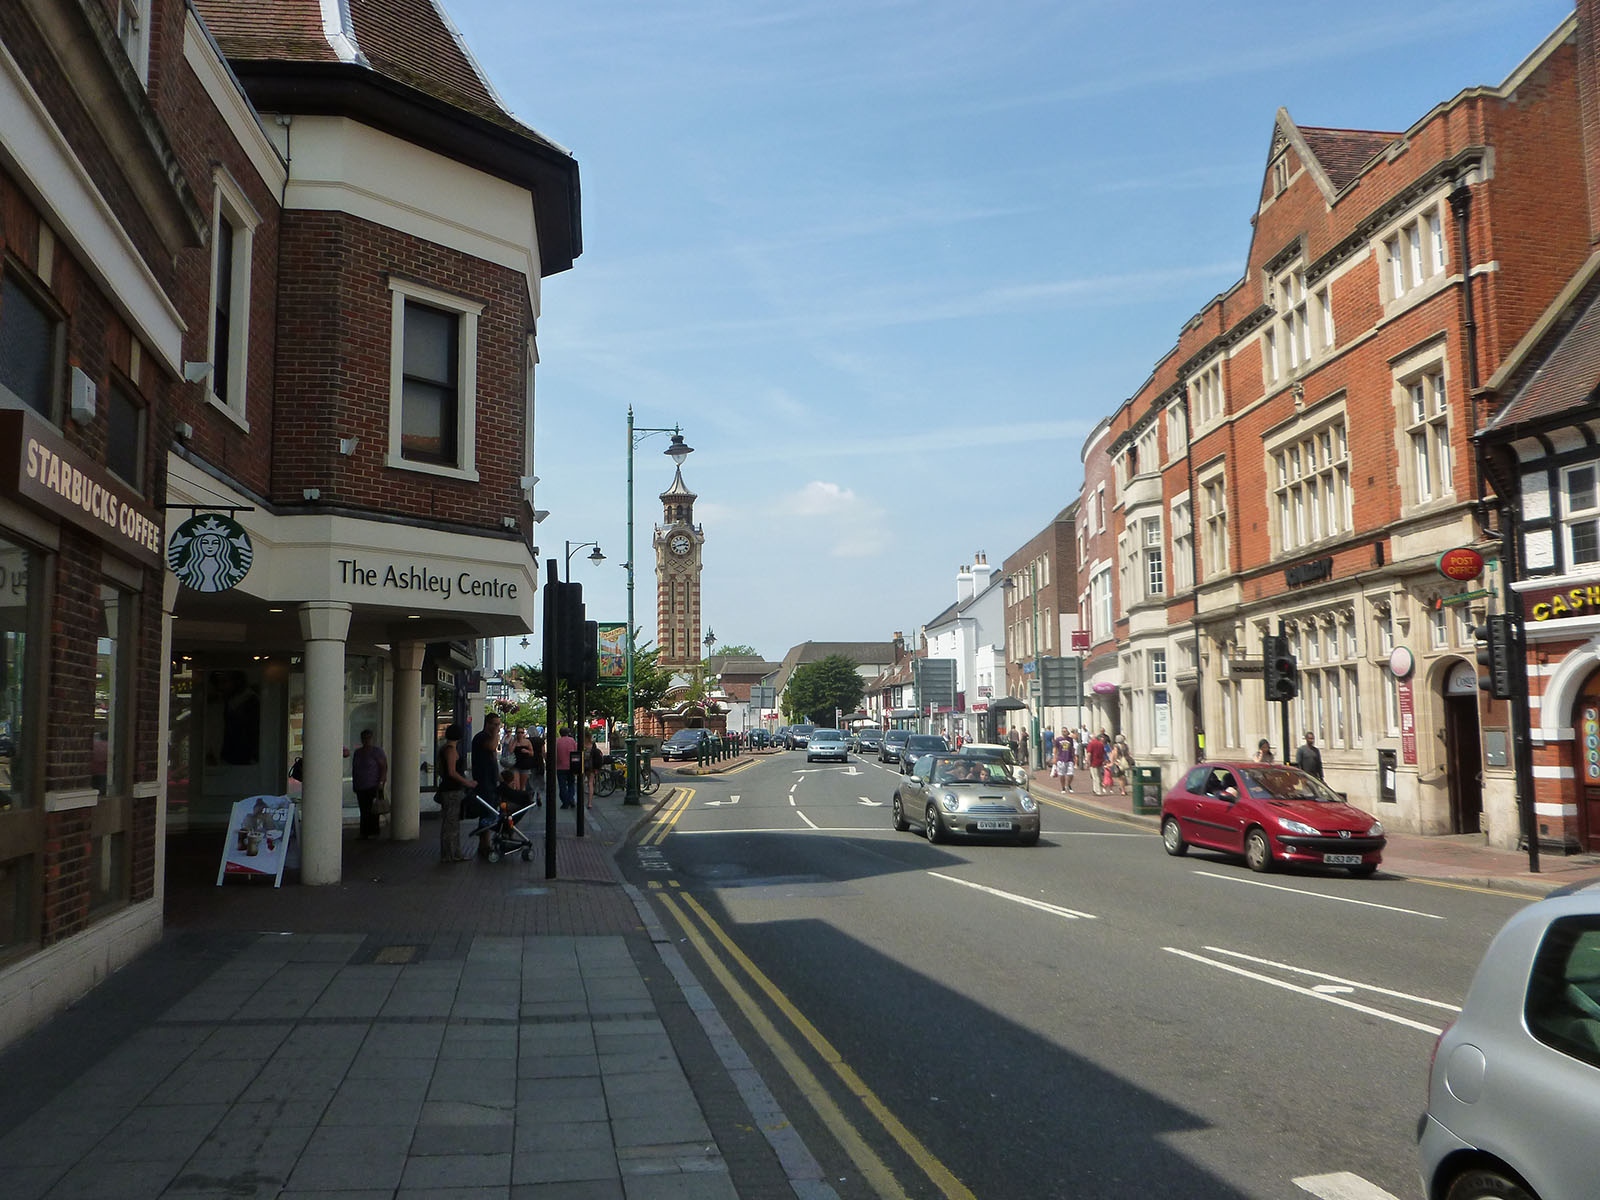 Epsom High street with the Ashley Centre and Epsom Clock Tower.